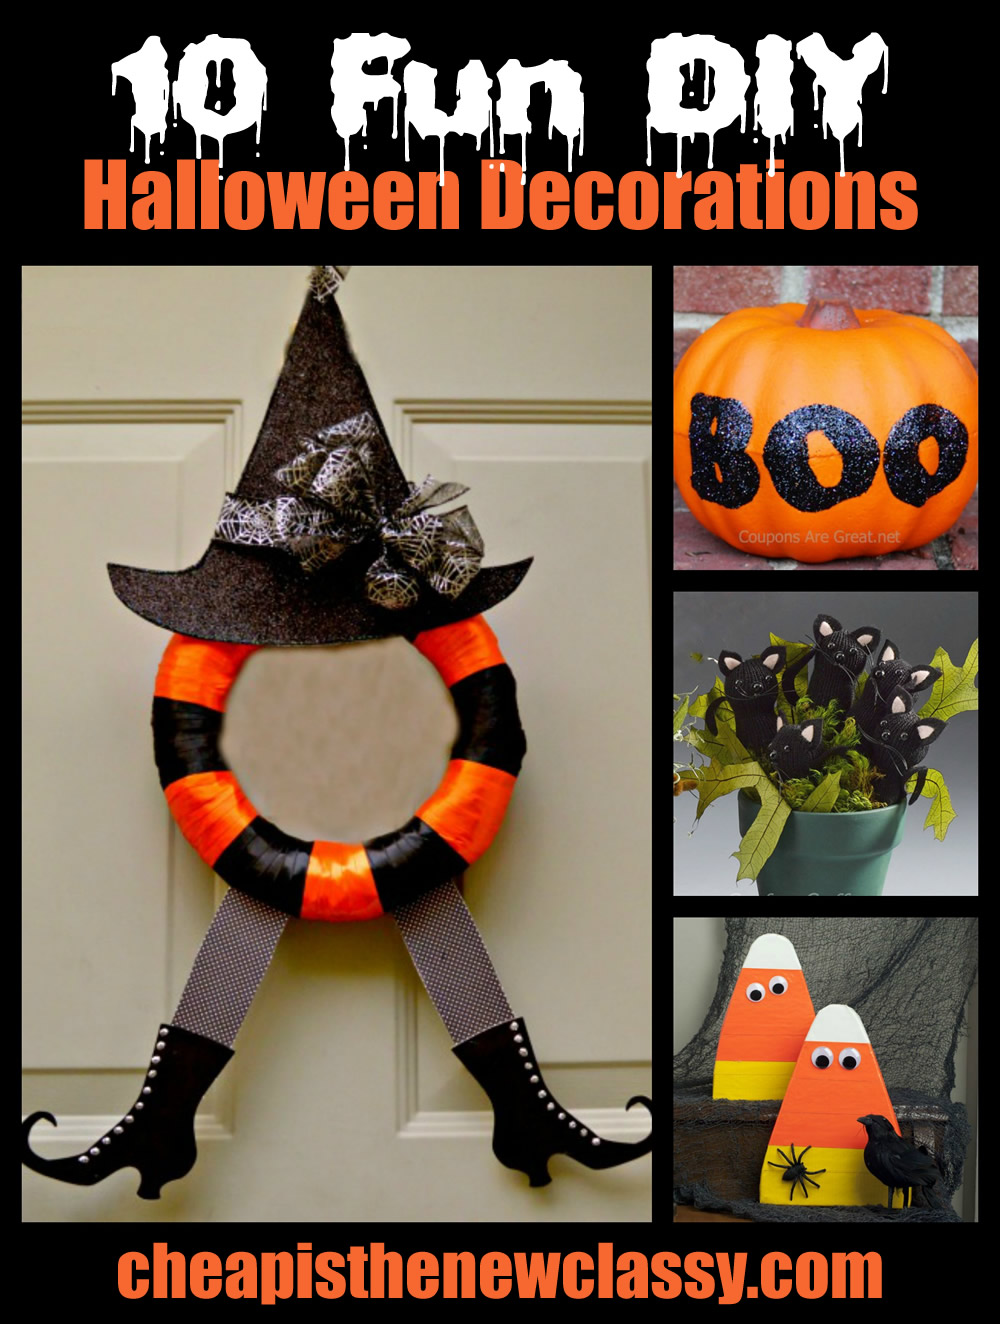 10 fun and spooky diy halloween decorations Halloween decoration diy cheap